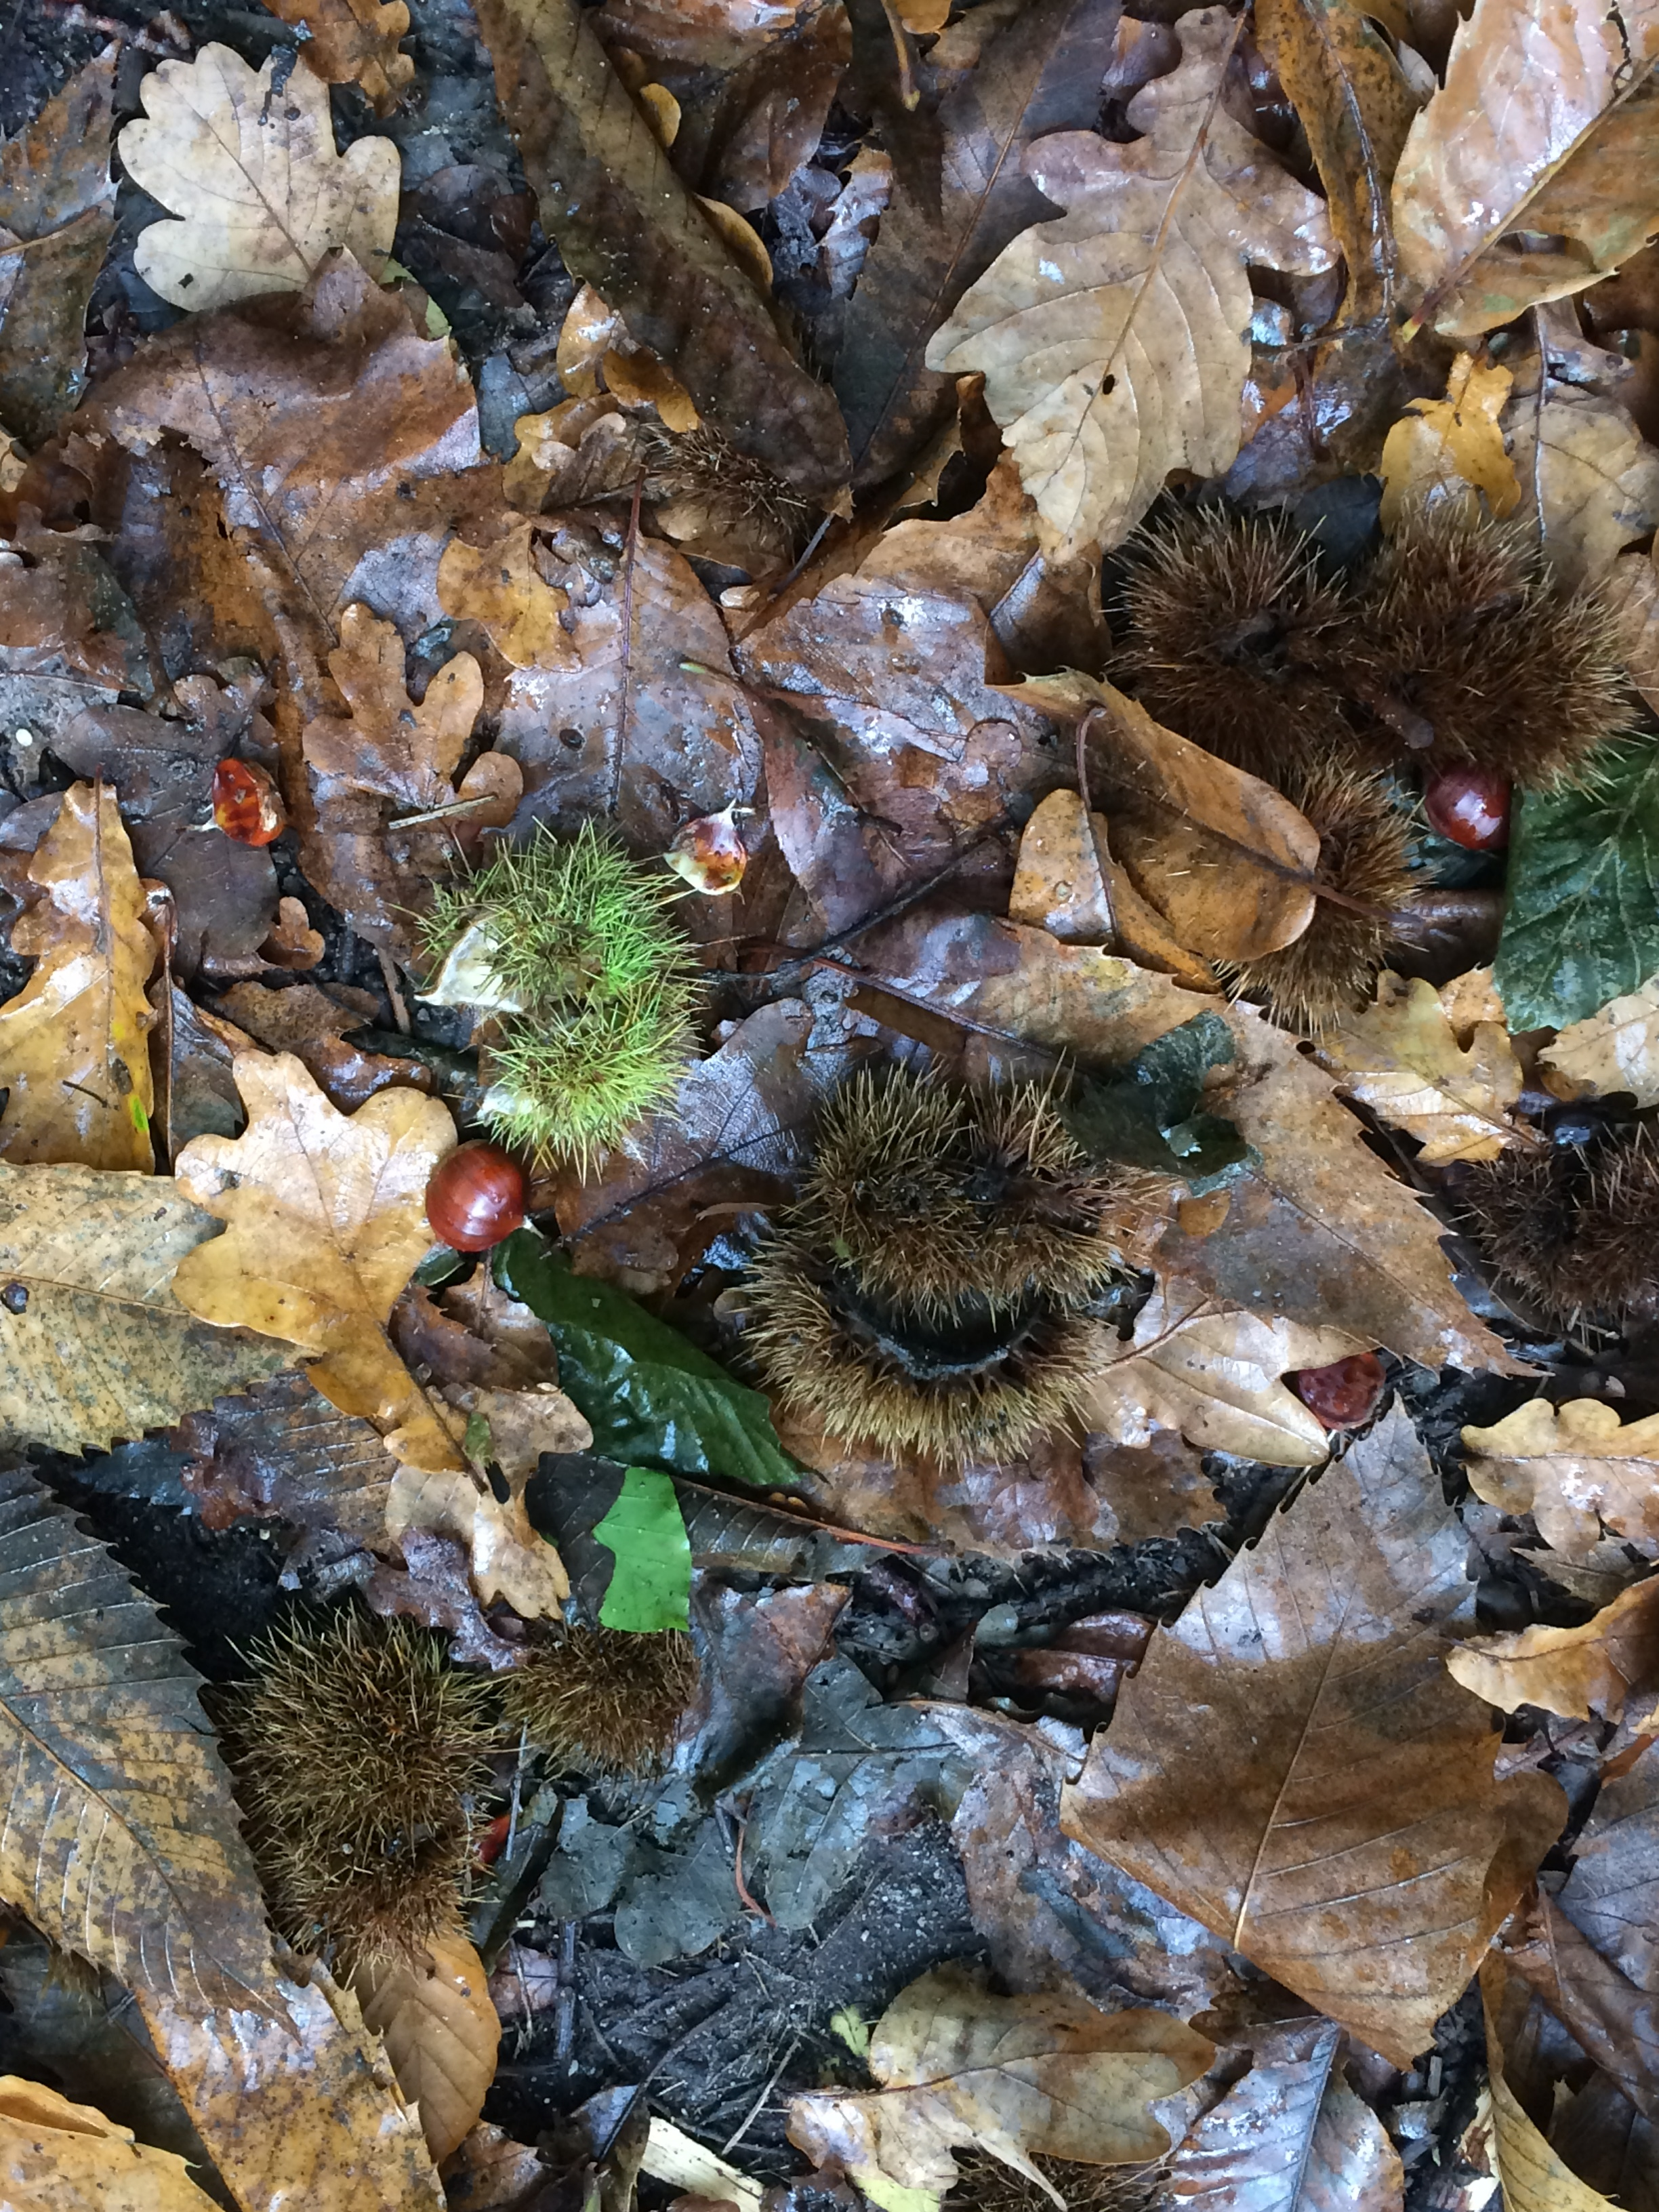 We scanned the ground for these,the chestnut is often found beside the prickly pod that housed it